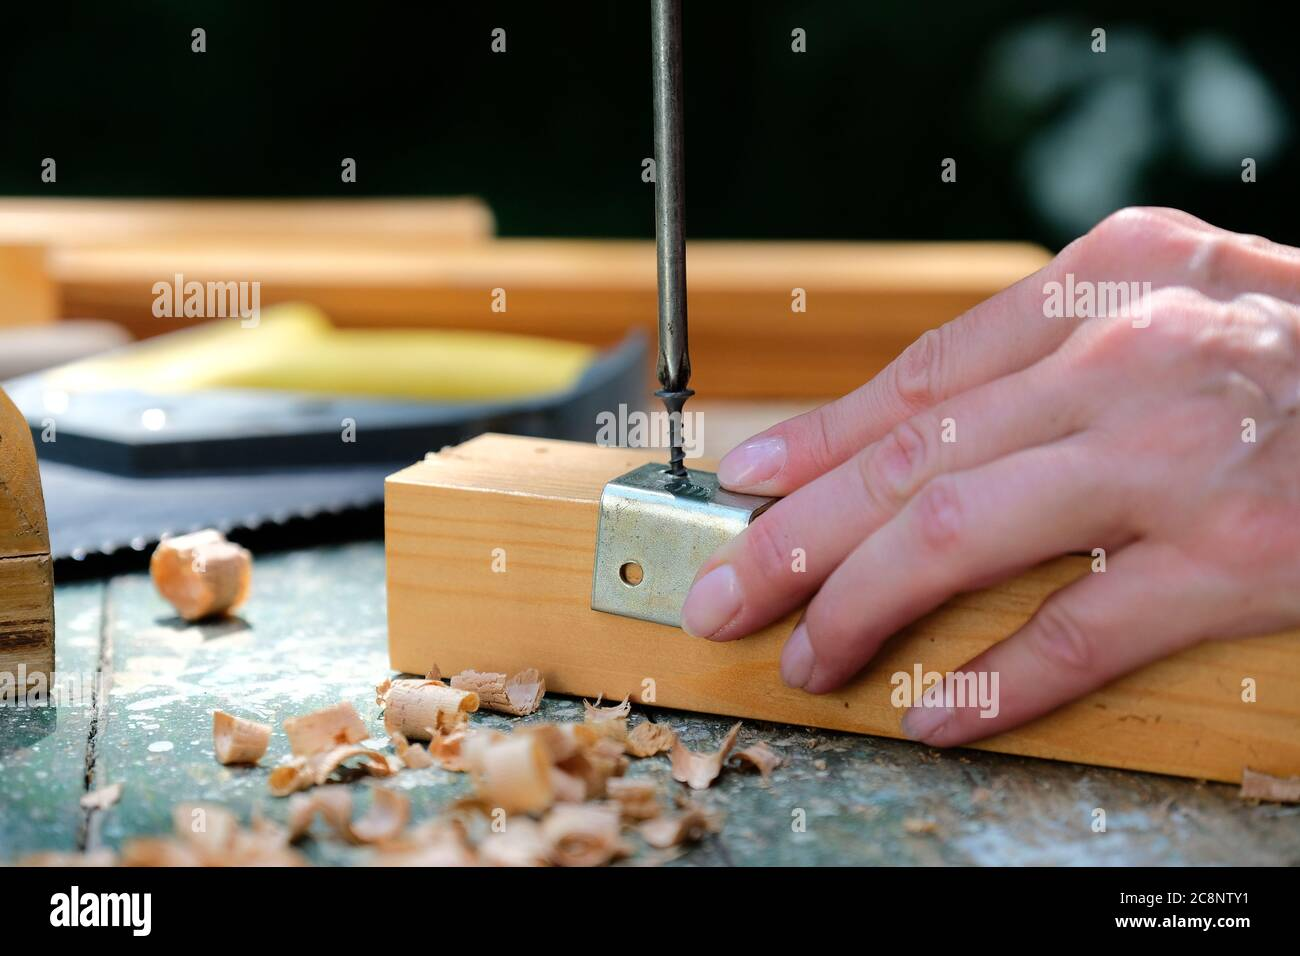 Diy Furniture Renovation Concept Woman Using Screwdriver To Mount Metal Bracket On Wooden Plank Close Up View Stock Photo Alamy